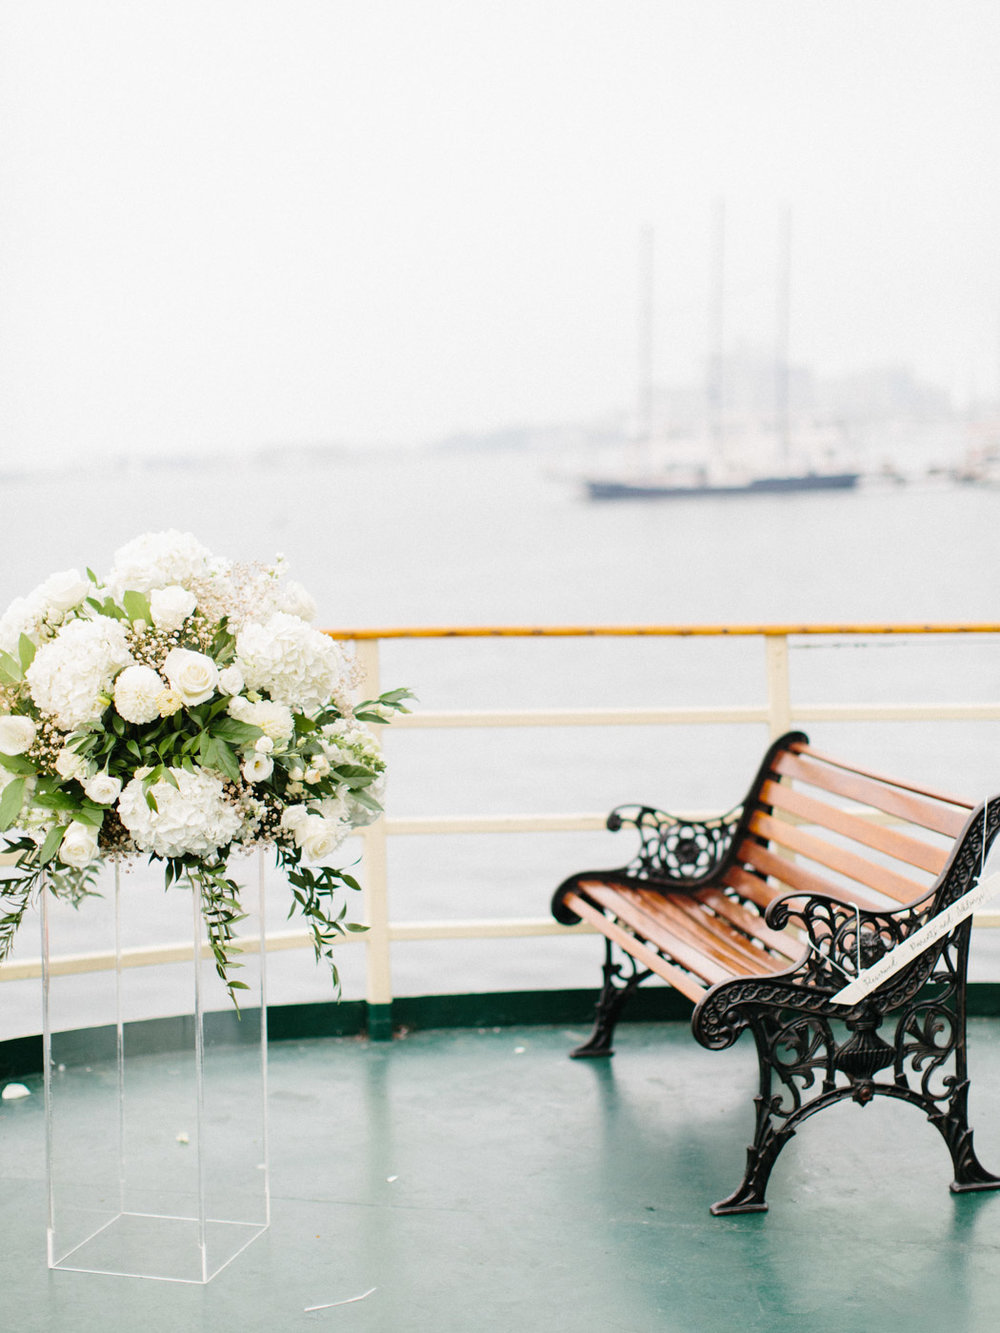 corynn_fowler_photography_toronto_wedding_boat_harbourfont-203.jpg